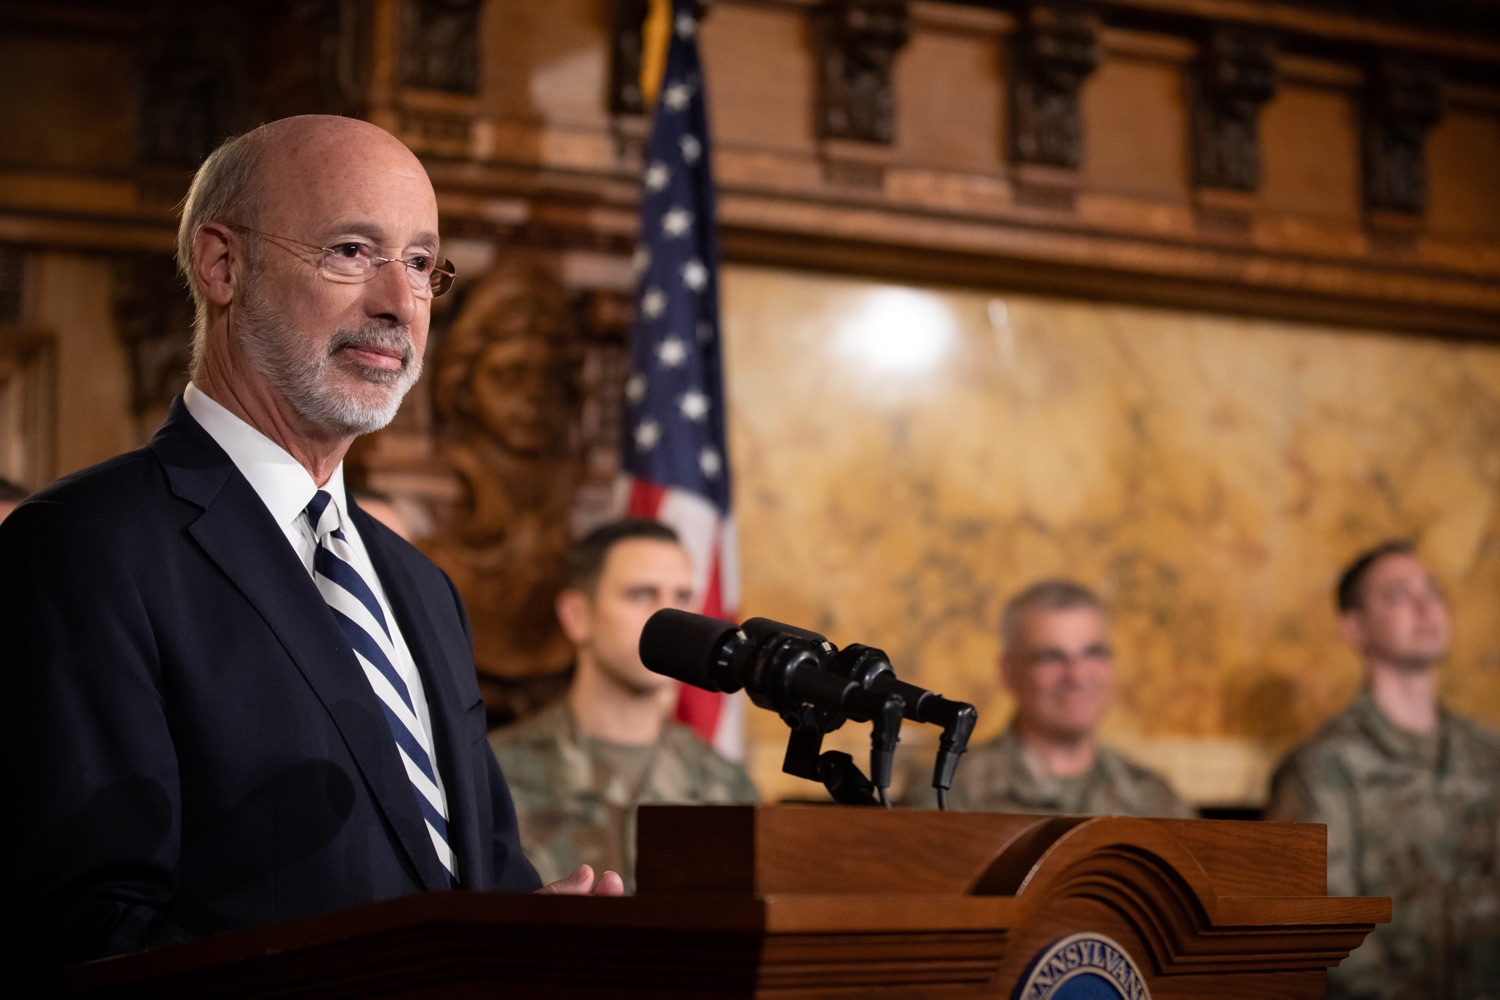 """<a href=""""http://filesource.abacast.com/commonwealthofpa/photo/17563_gov_giBill_dz_004.jpg"""" target=""""_blank"""">⇣Download Photo<br></a>Governor Tom Wolf speaking at the announcement. Governor Tom Wolf, joined by Pennsylvanias adjutant general and head of the Department of Military and Veterans Affairs Maj. Gen. Anthony Carelli, legislators and PA National Guard members and their families, encouraged PA National Guard members to take advantage of the new Military Family Education Program, or PA GI bill, now open for enrollment. Harrisburg, PA Monday, November 4 2019"""